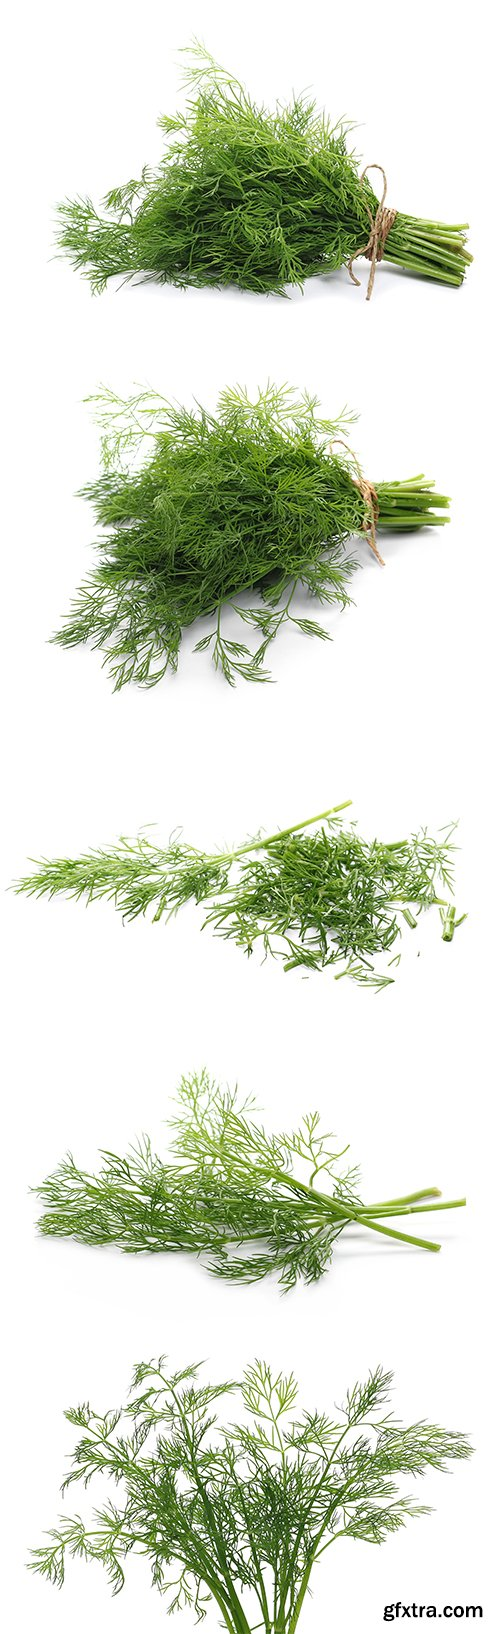 Green Dill Isolated - 10xJPGs